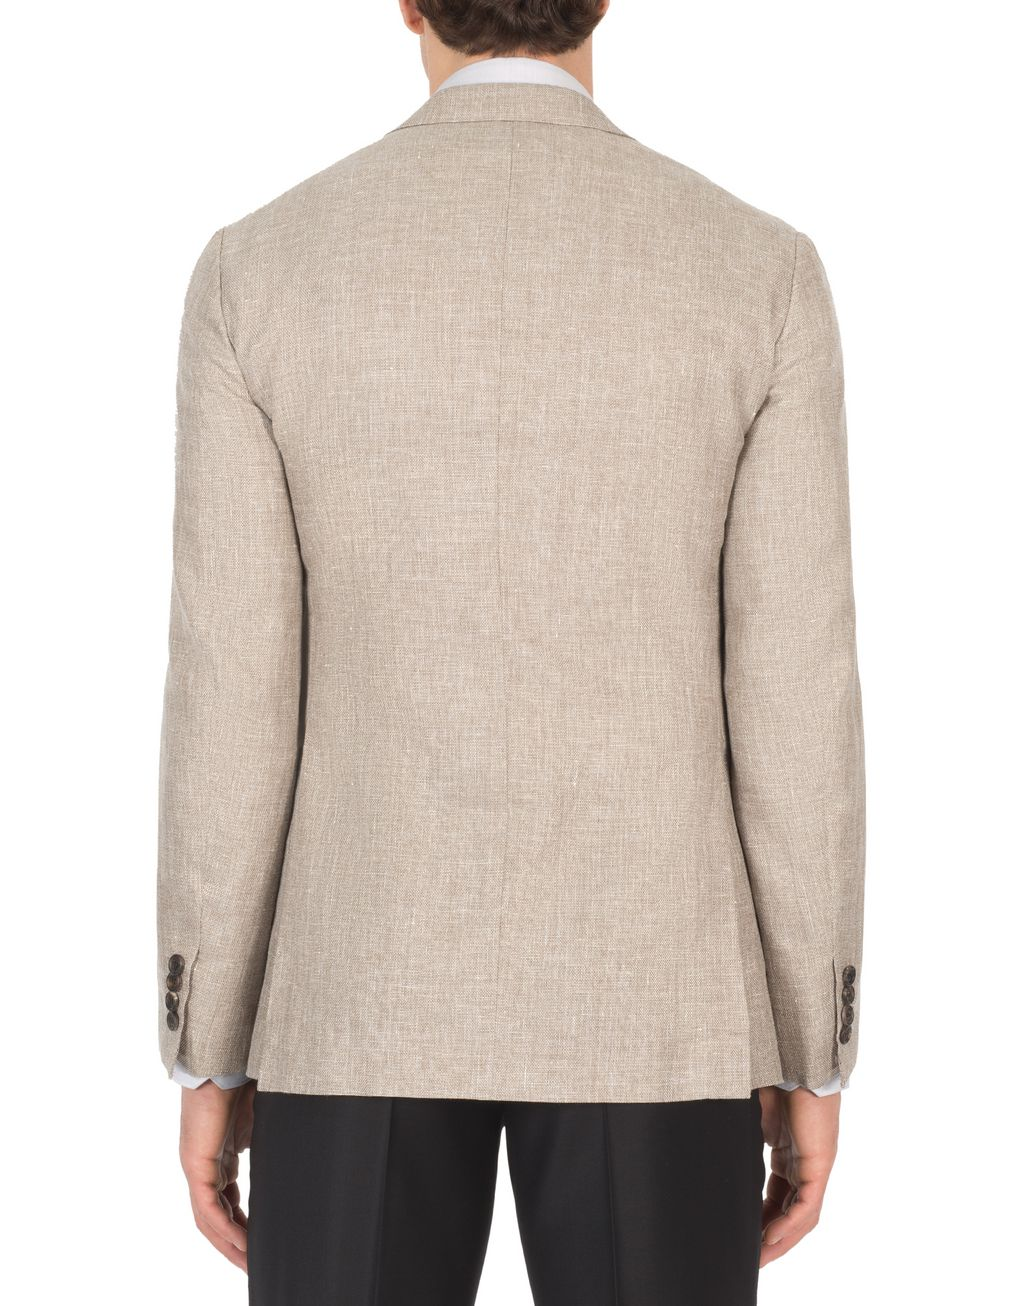 BRIONI Beige Hopsack Linen Plume Jacket Suits & Jackets Man d